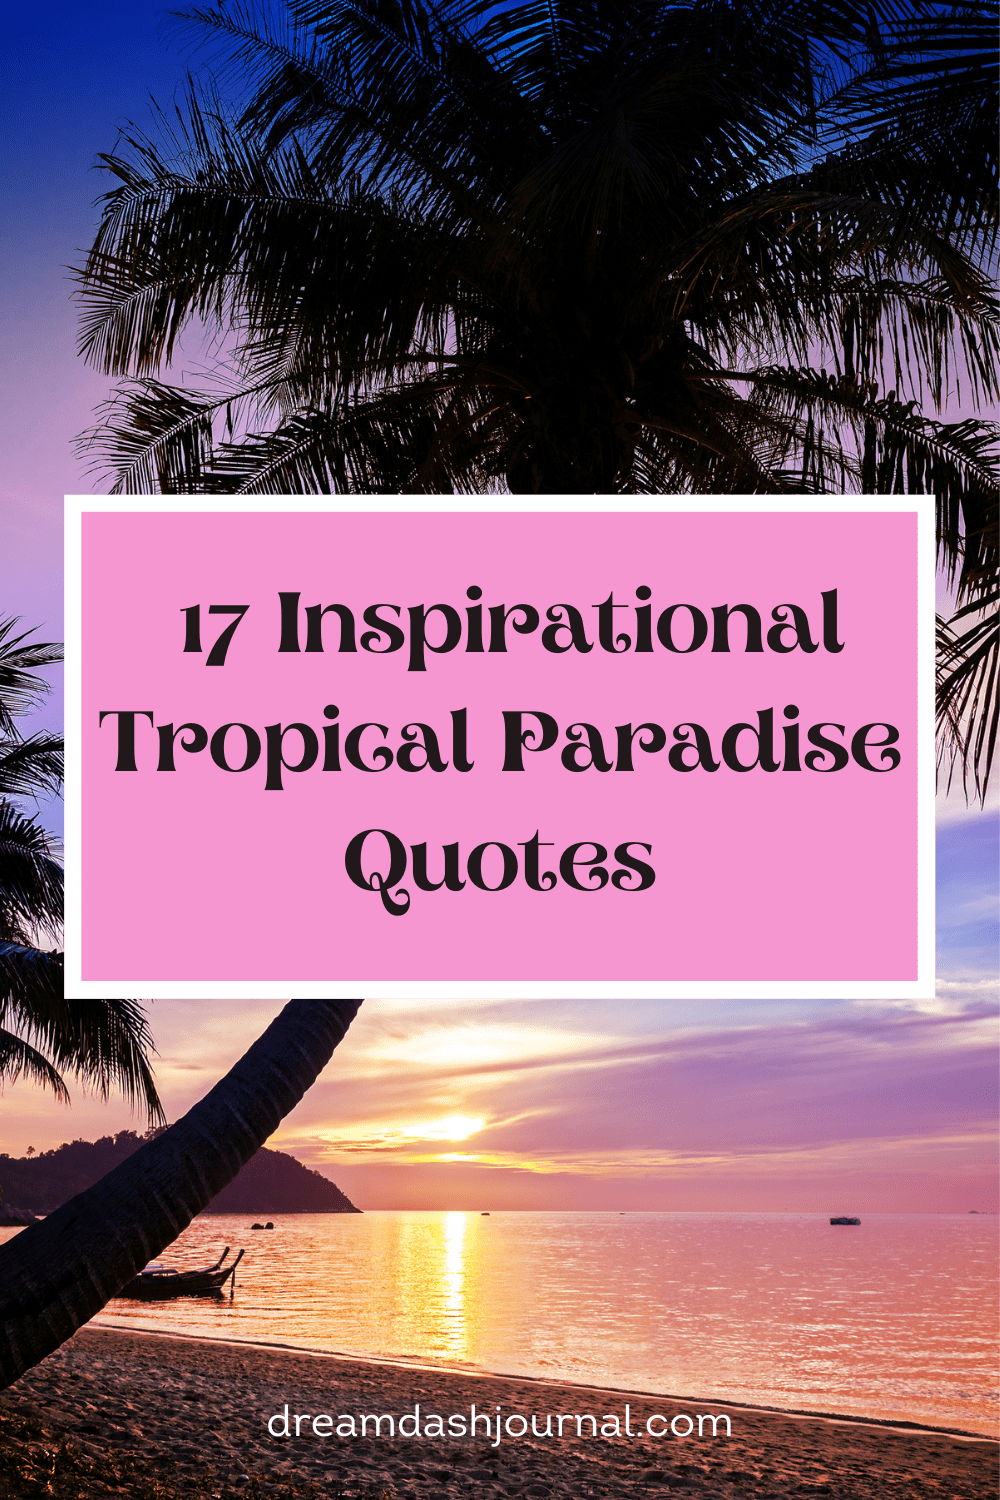 17 Dreamy Tropical Paradise Quotes to Inspire You